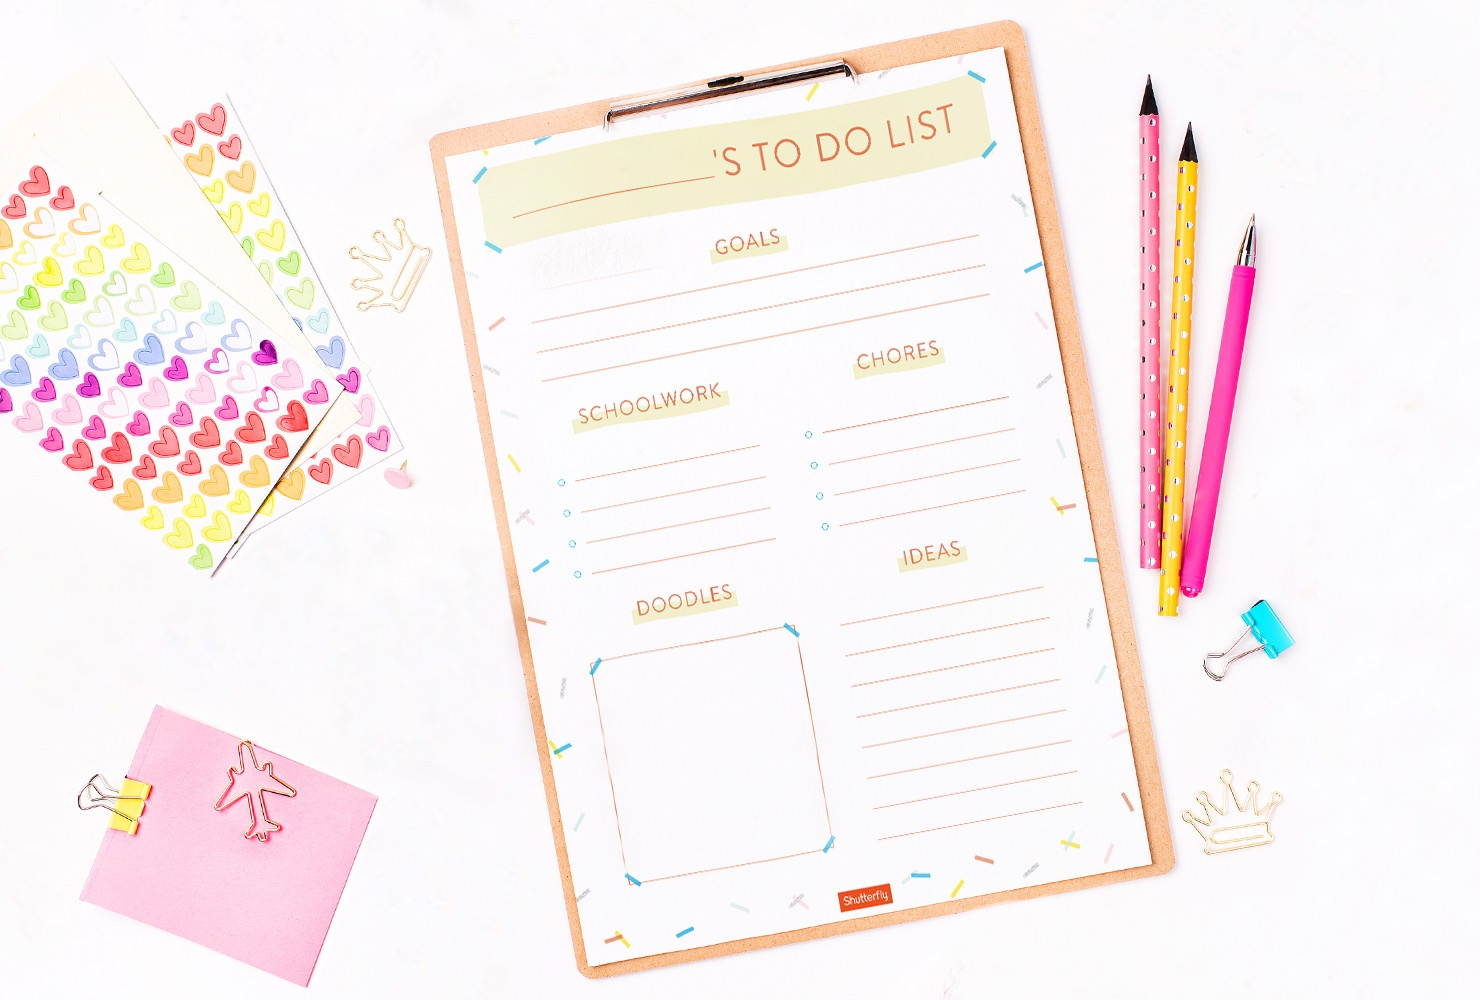 8 Free Printable To Do Lists To Get Things Done | Shuttterfly - Free Printable Kids To Do List